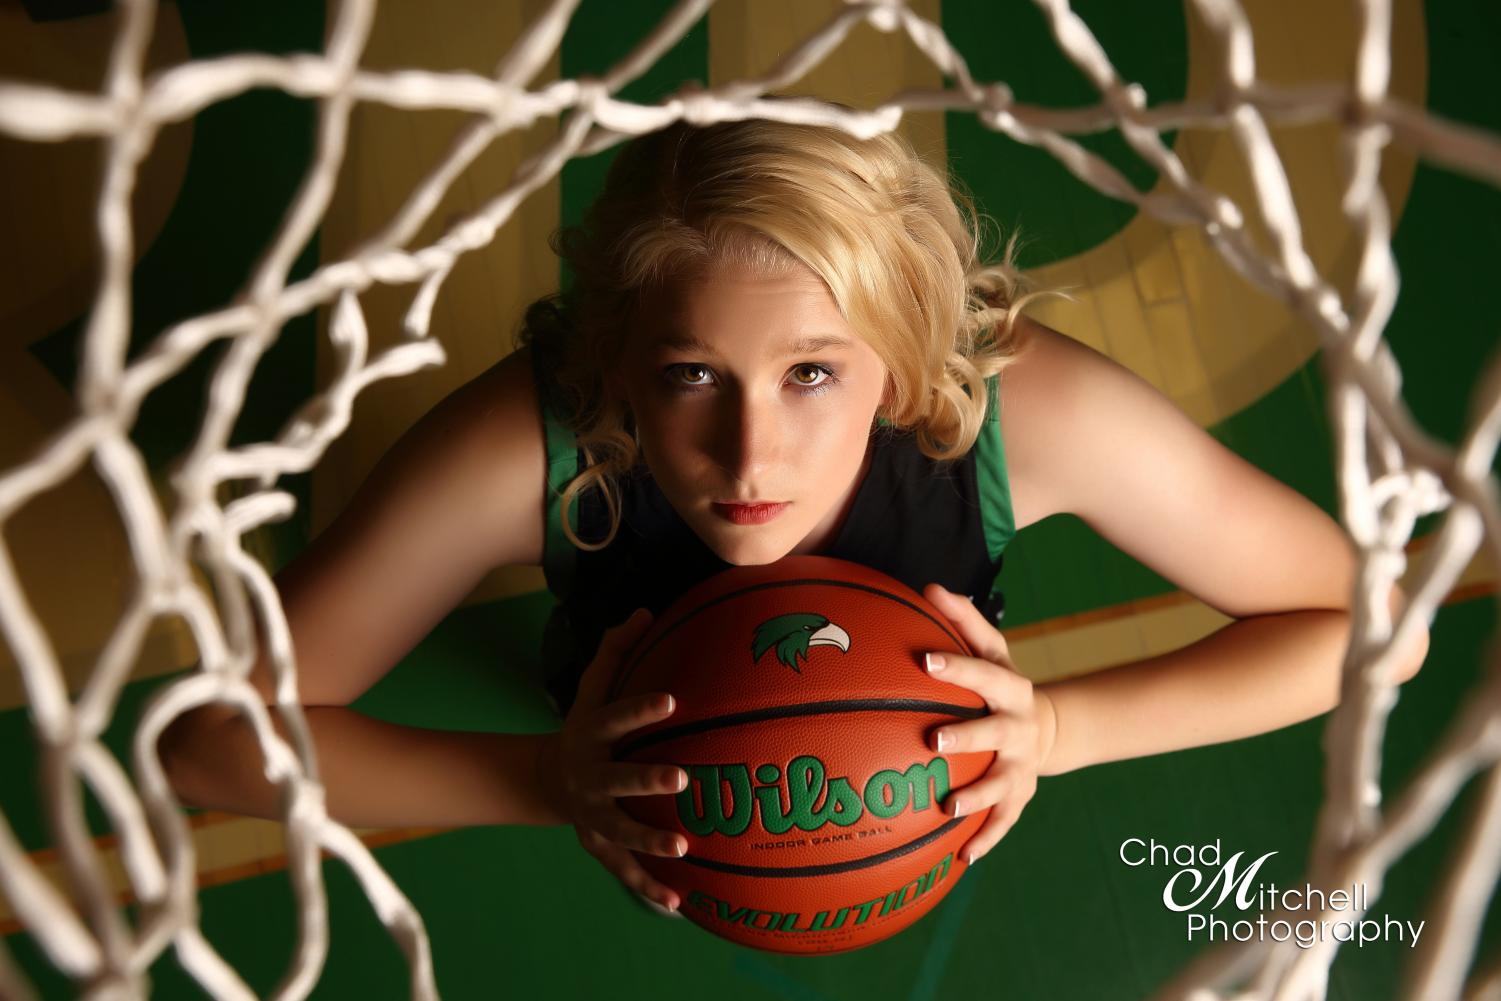 """One of the senior photos for Breanna Evans during her senior photo shoot with Chad Mitchell Photography. Evans started playing basketball in sixth grade. """"I first met and began working with Bre when she was in 6th grade. She had a lot of raw talent, and worked hard at improving her game. She was always a good kid, very respectful, and willing to listen and learn,"""" Breanna"""